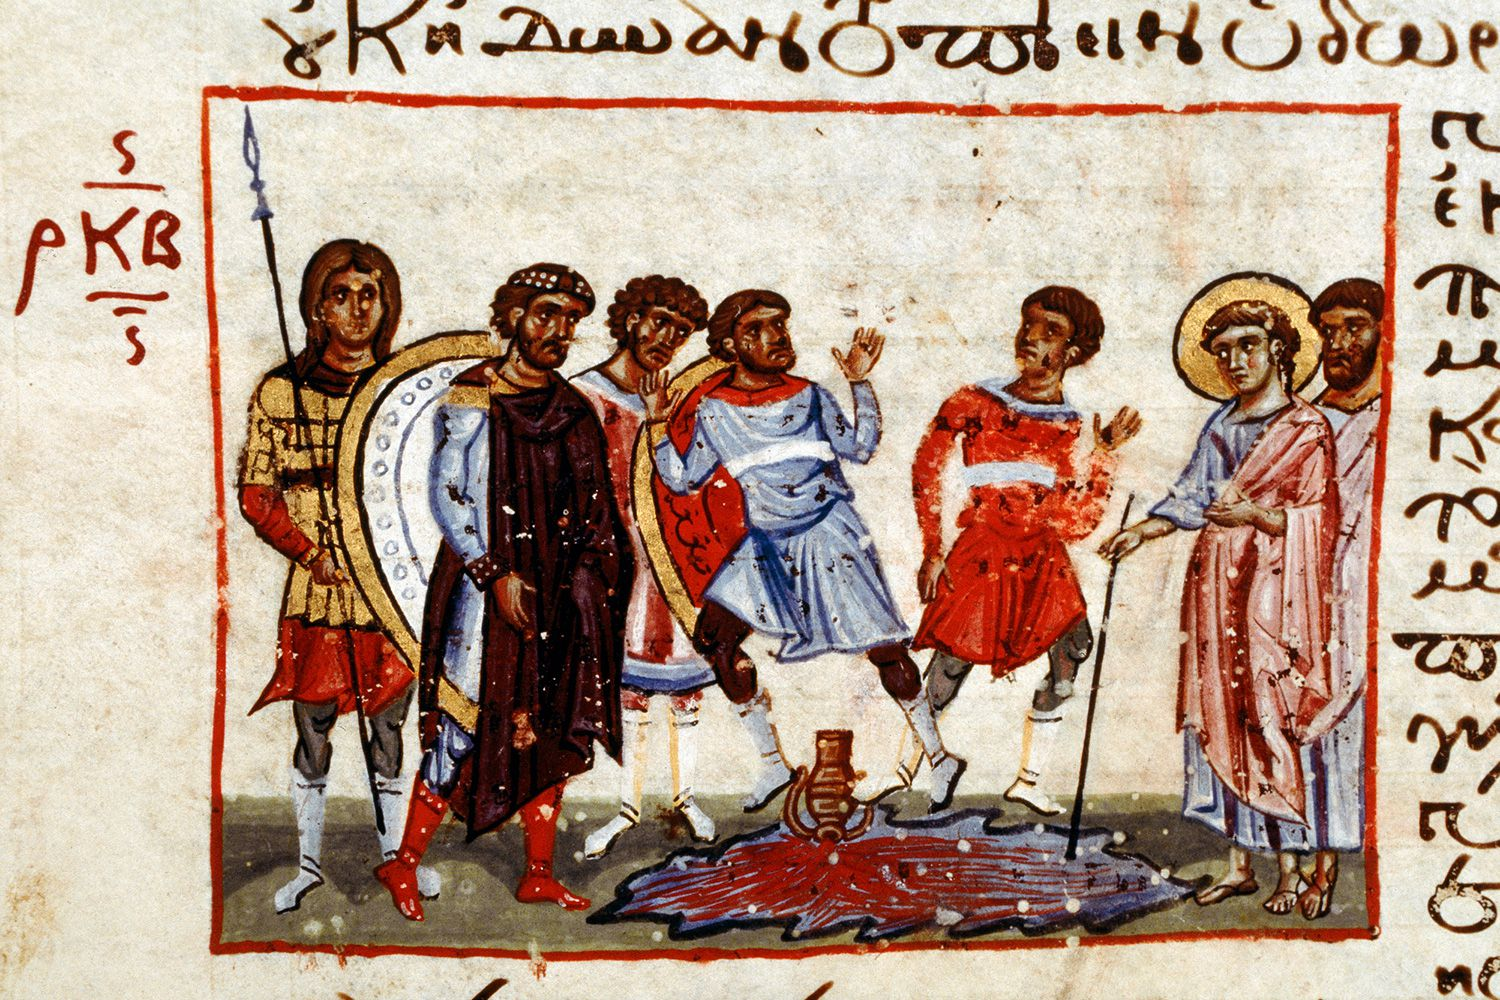 The 10 Egyptian Plagues